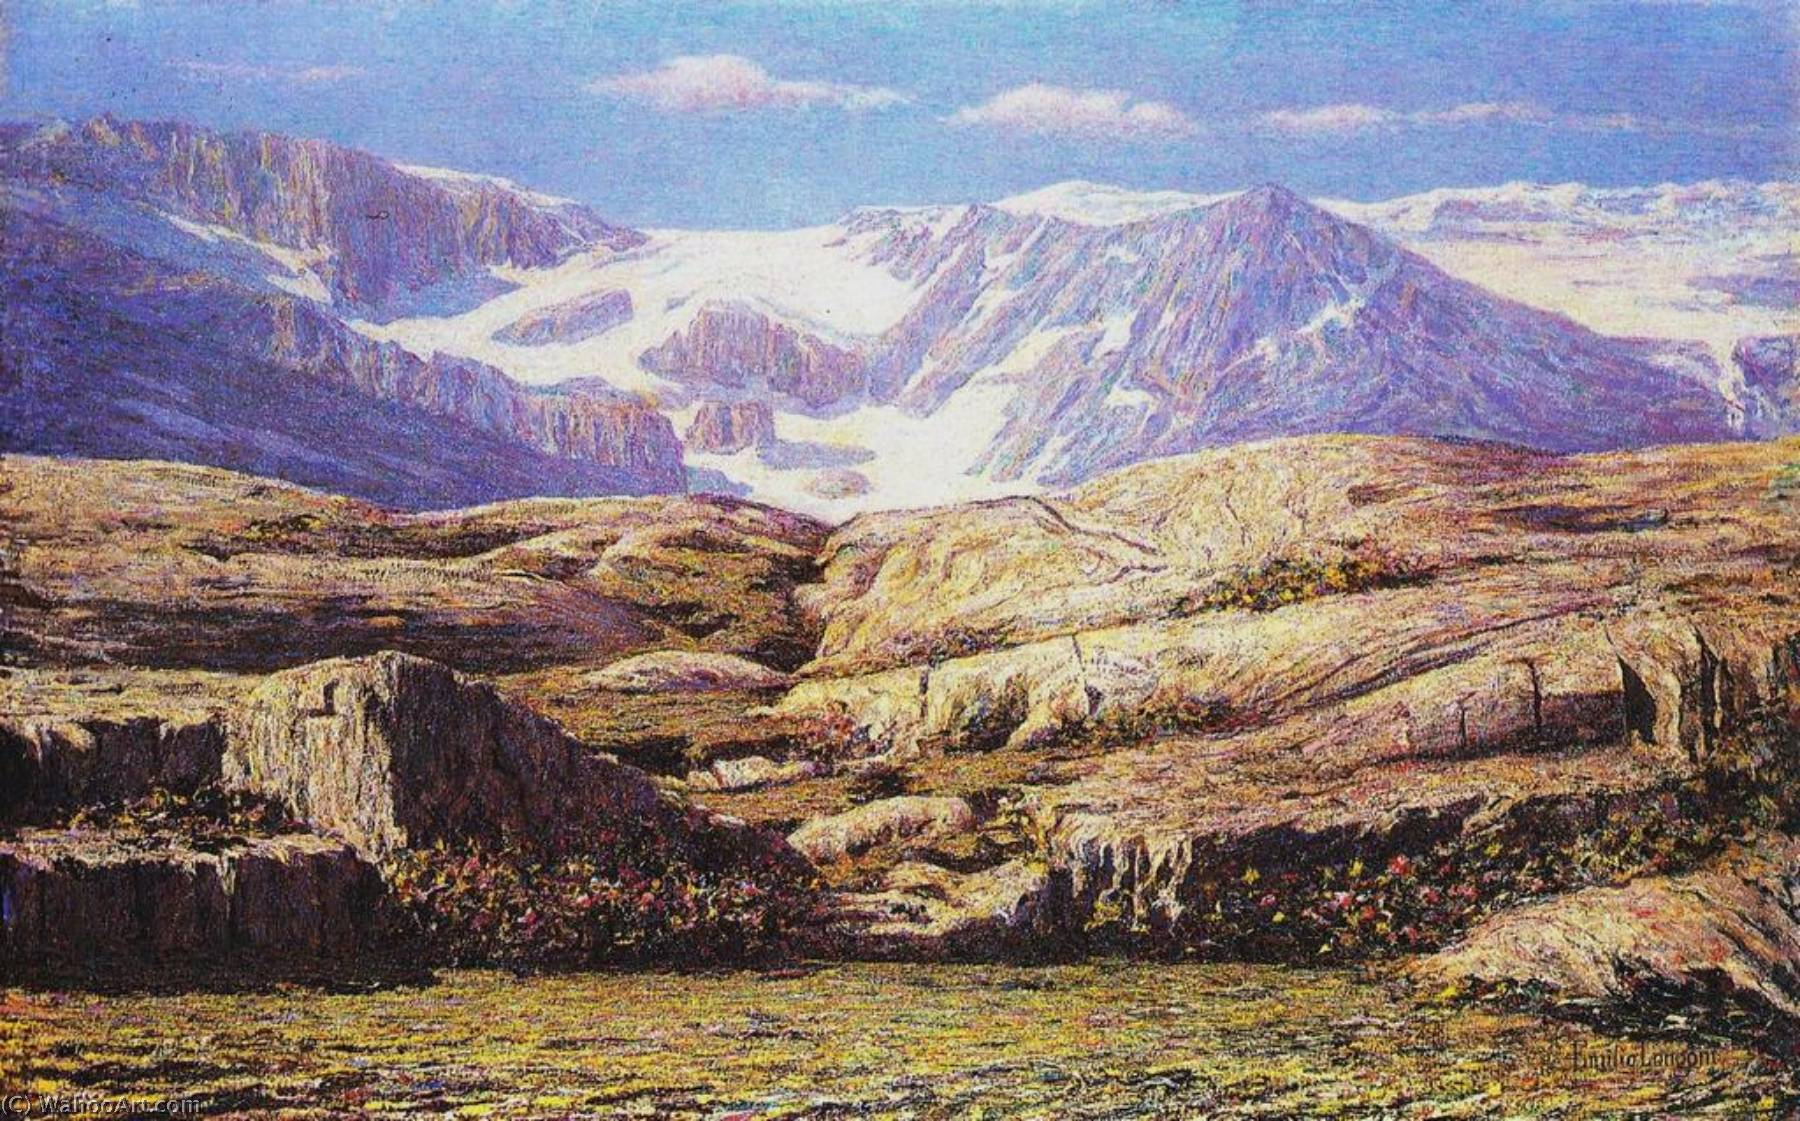 Glacier in the Sunlight, Oil On Canvas by Emilio Longoni (1859-1932)